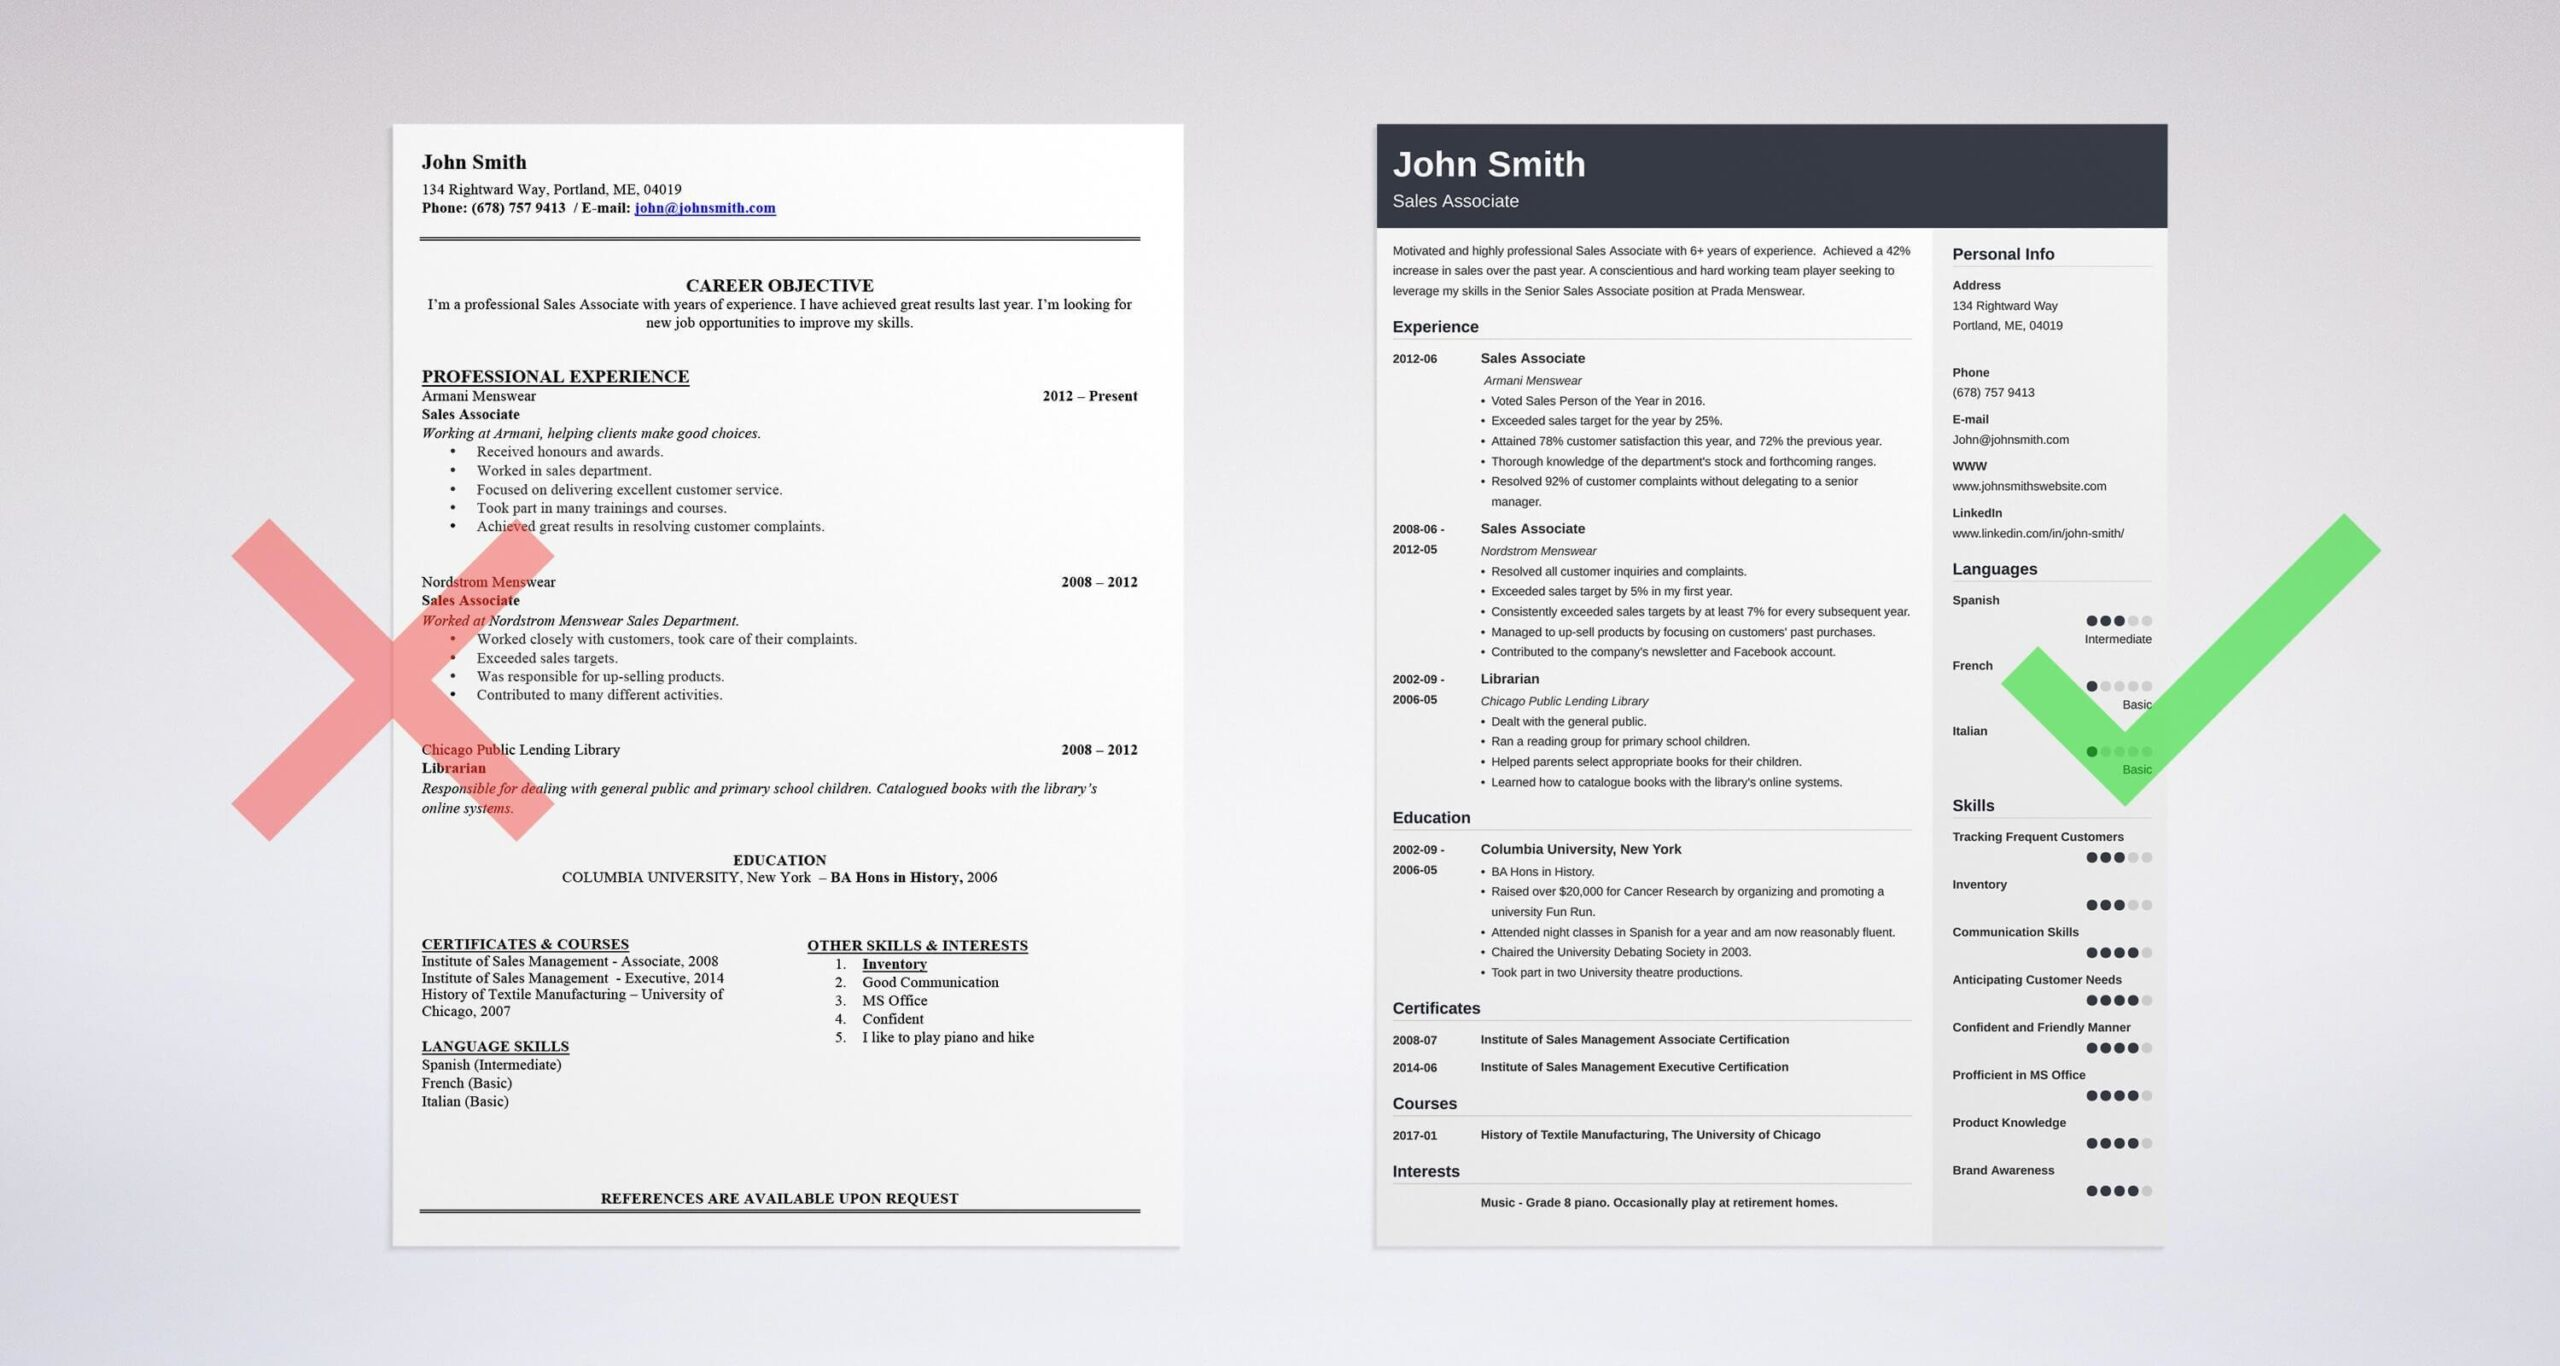 professional resume summary examples statements best for on template cubic nozoom Resume Best Summary Statements For A Resume